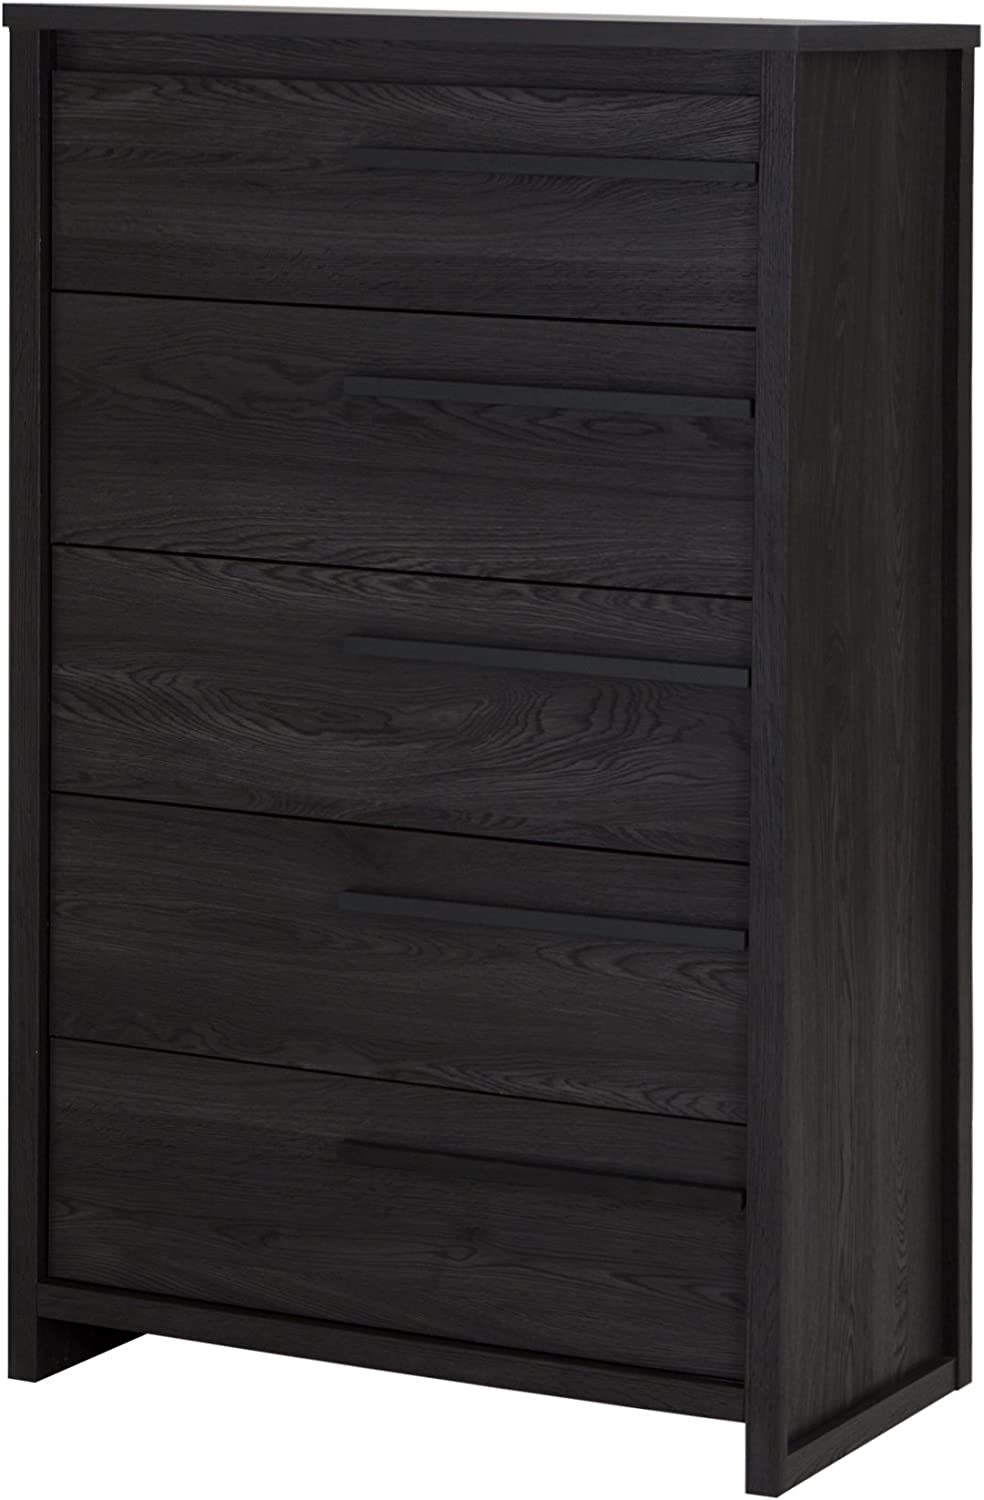 South Shore Tao 5-Drawer Dresser, Grey Oak with Wooden Handles